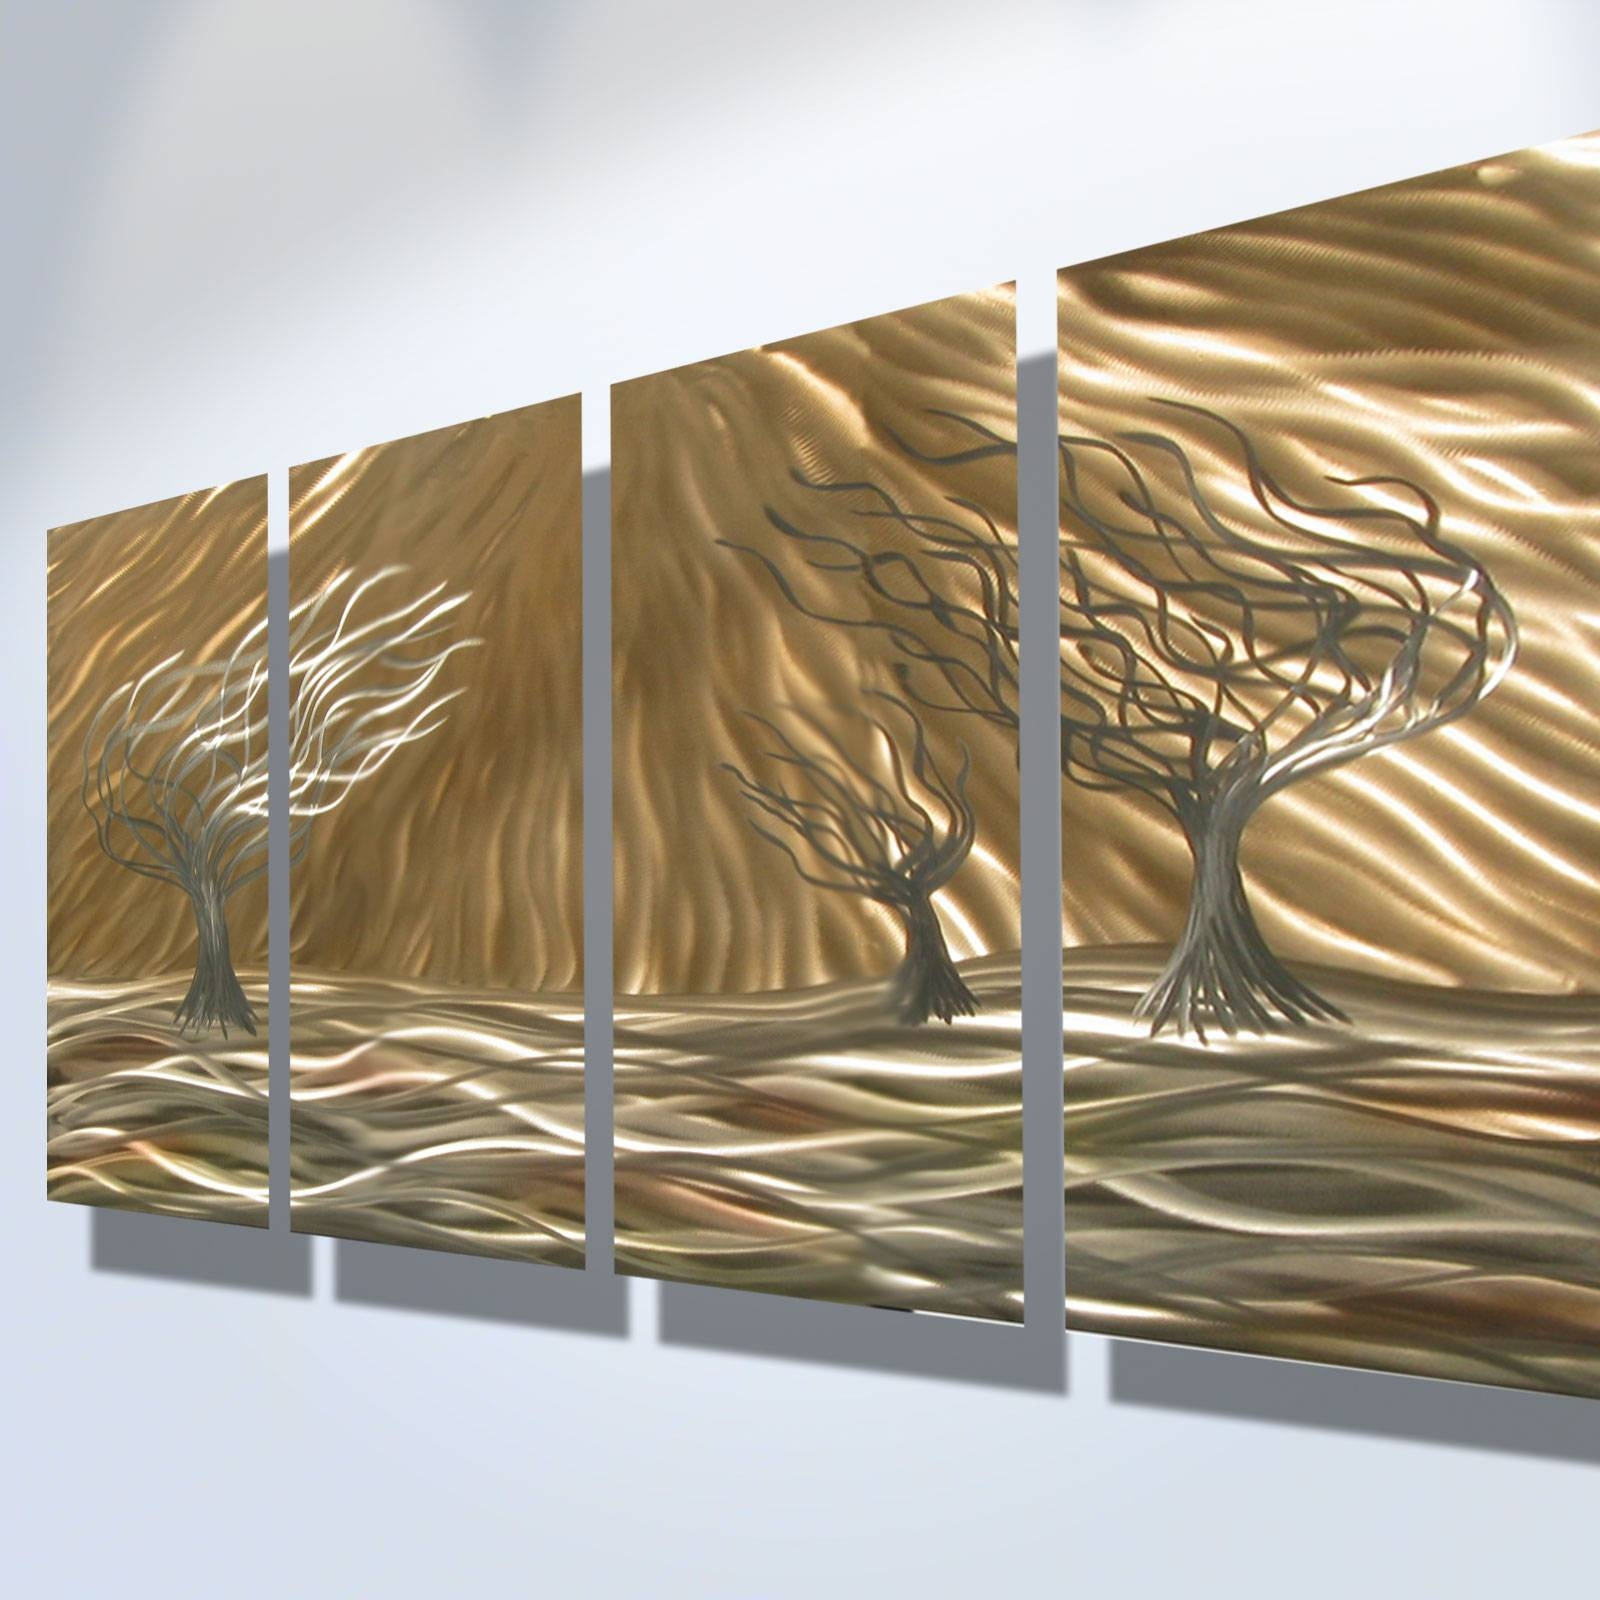 3 Trees 4 Panel – Abstract Metal Wall Art Contemporary Modern Intended For Most Recent Cheap Metal Wall Art (Gallery 11 of 20)